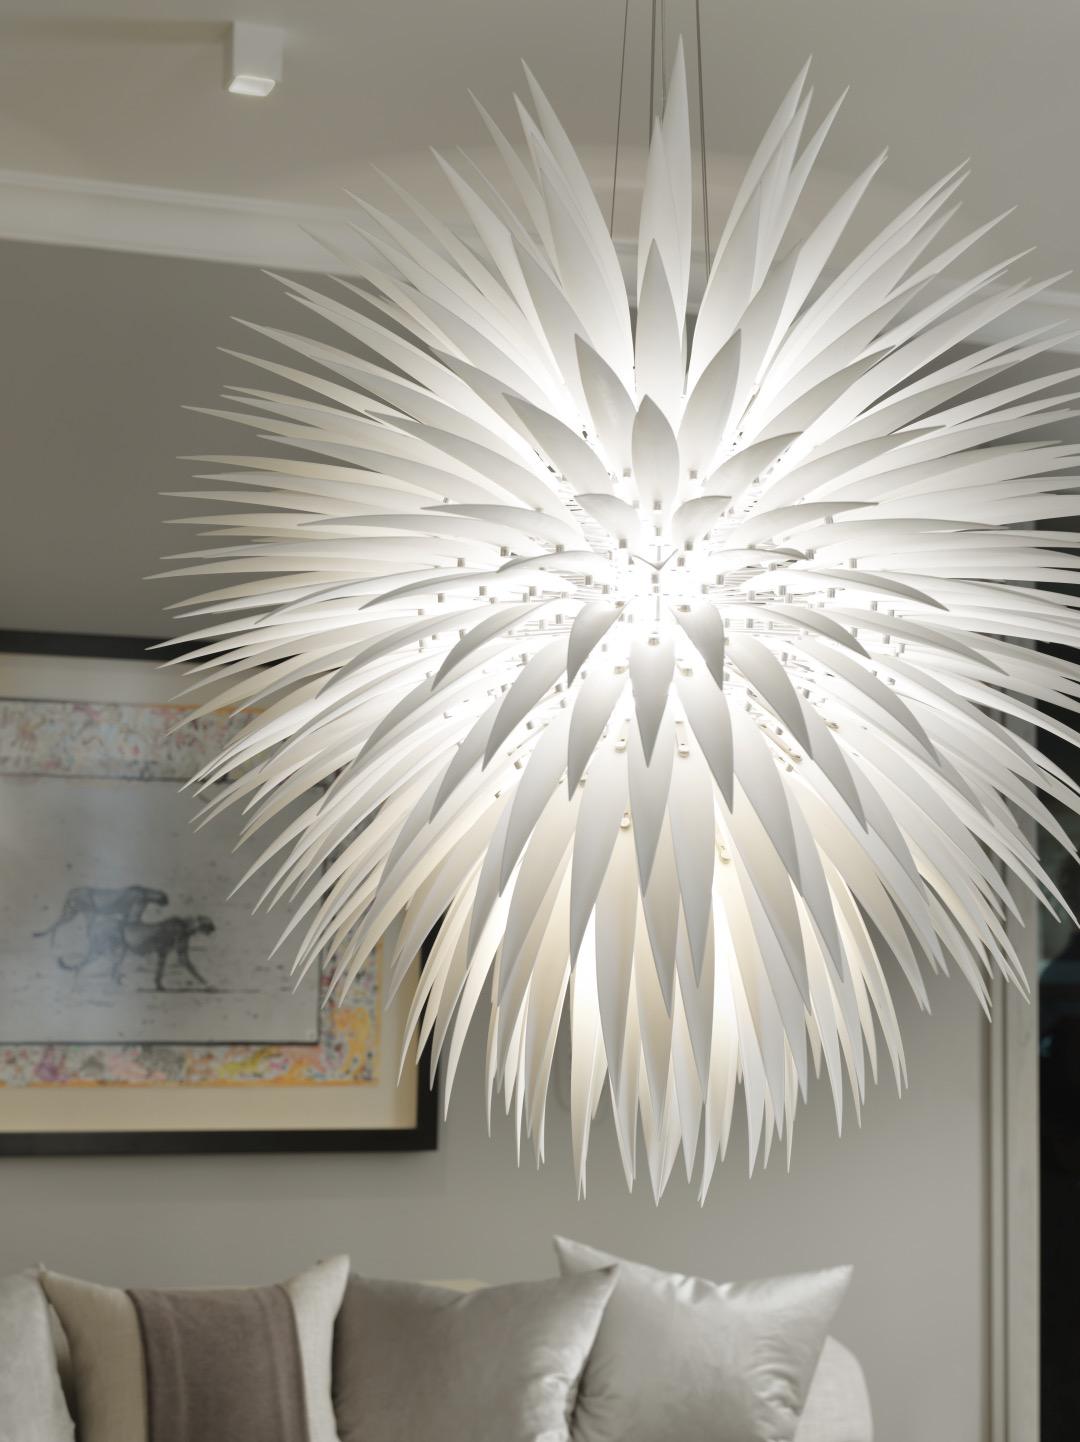 Flora inspired lights by Jeremy Cole